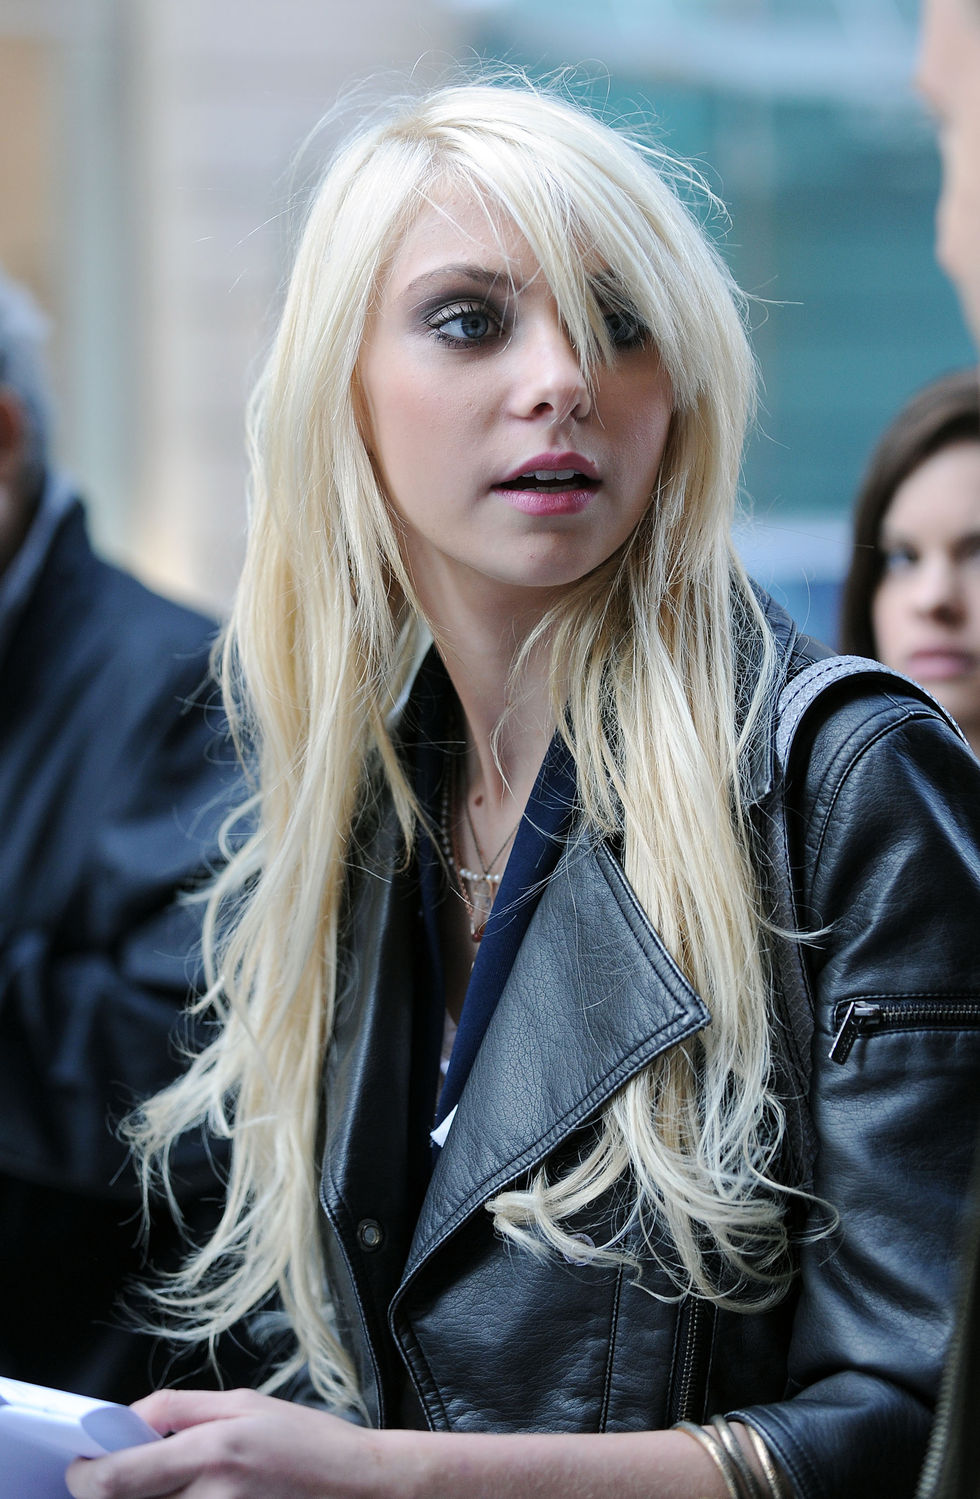 taylor-momsen-leggy-candids-on-set-of-gossip-girl-in-new-york-01